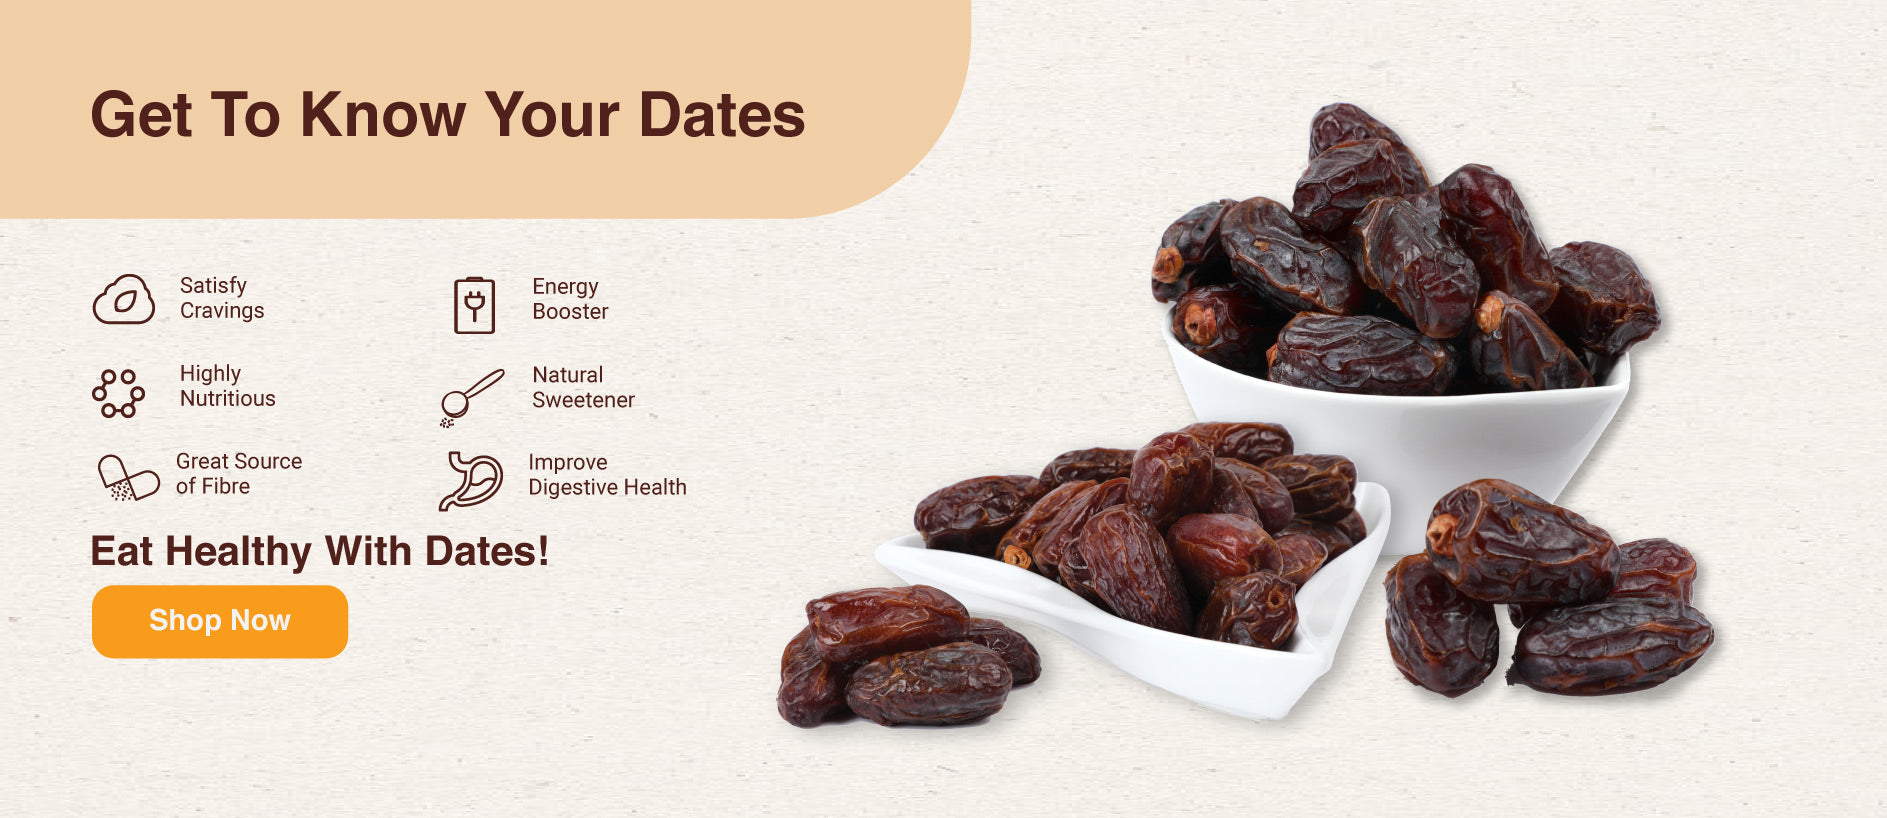 Dried Dates, Buy Dried Dates, Healthy & Nutritious Snacks, Medjool Dates, Halal Date Fruits, Halal Dates Singapore, Dates Singapore, Kurma Singapore,Healthy Halal Snacks, Halal Snacks Online